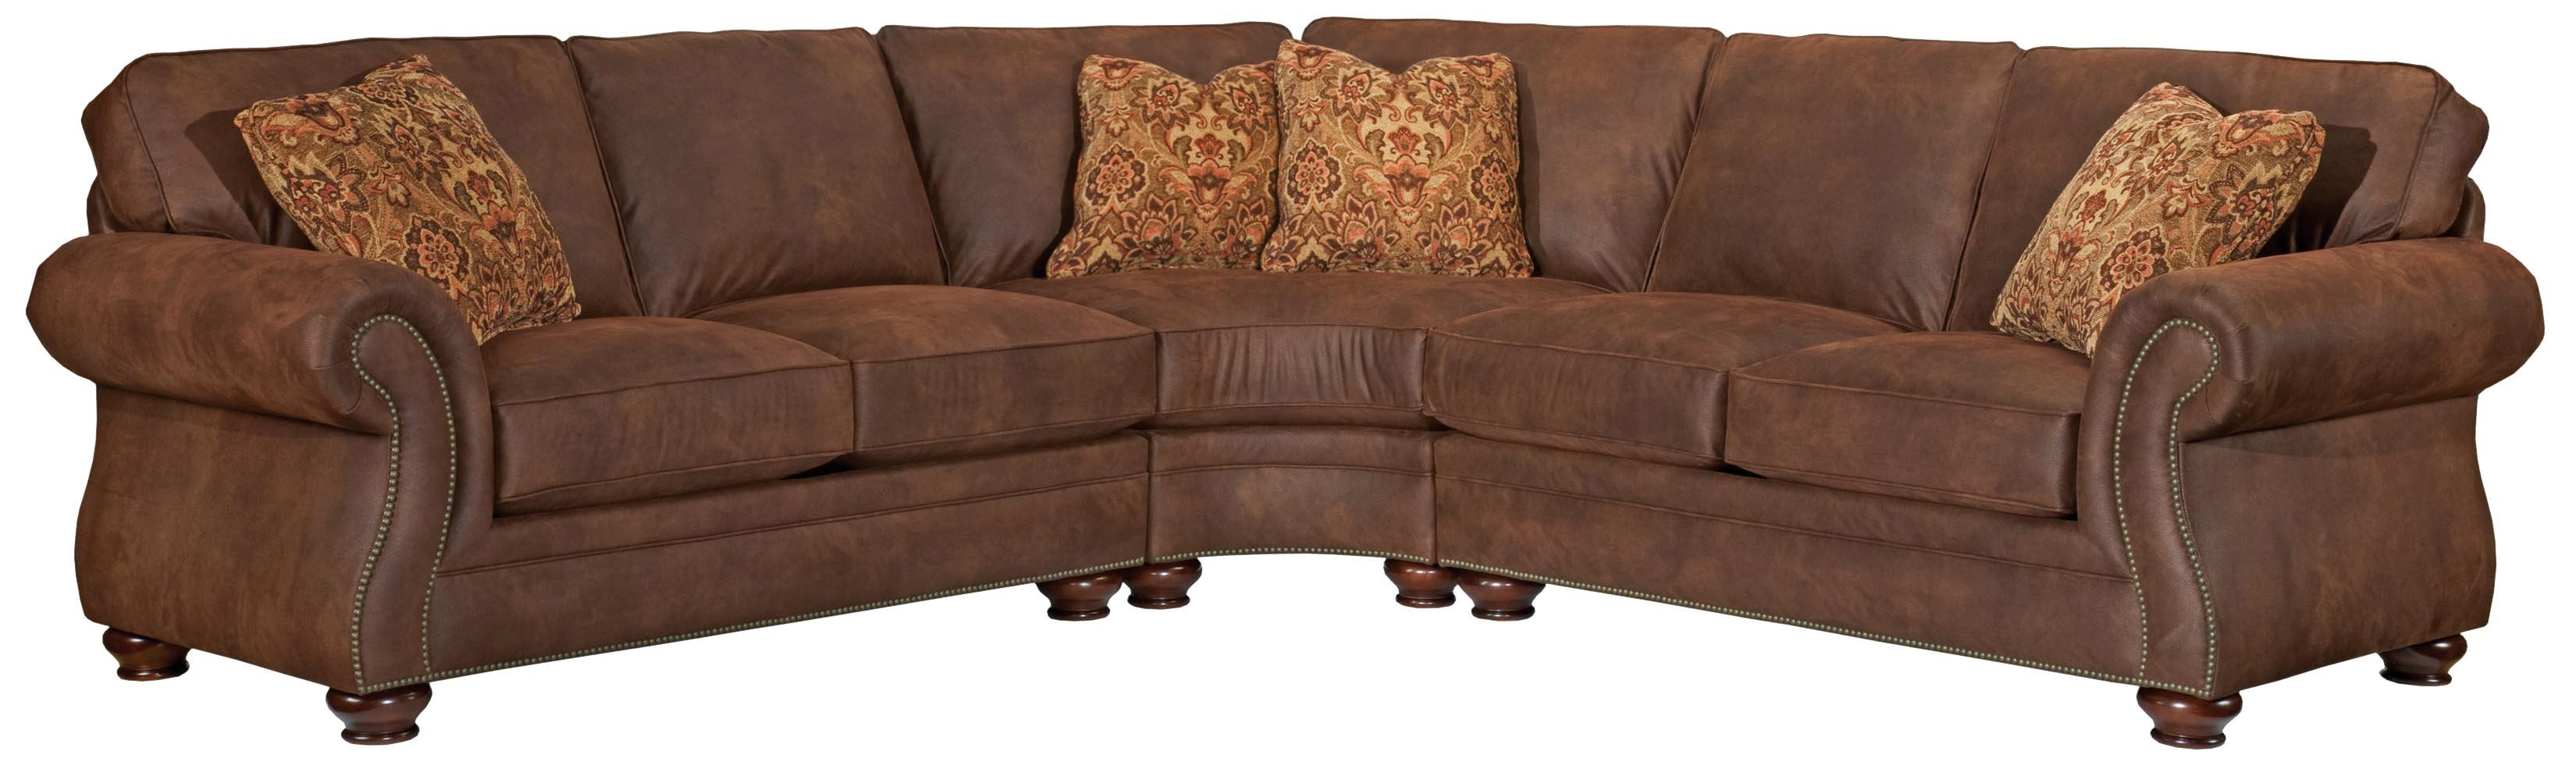 Broyhill Furniture Laramie 3 Piece Wedge Sectional Sofa – Wayside Regarding Broyhill Sectional Sleeper Sofas (Image 5 of 20)